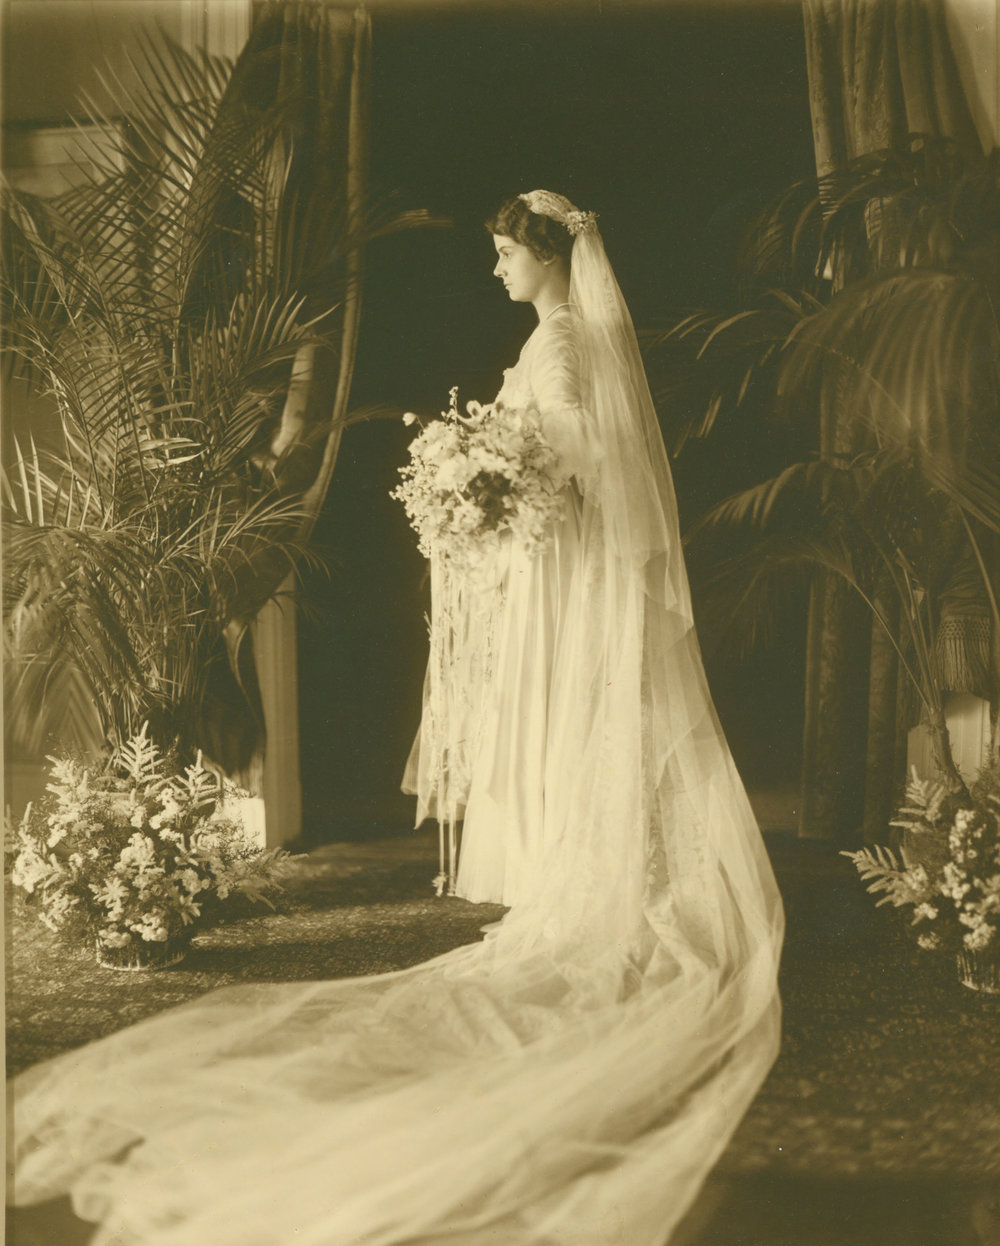 Pictured above: Henry Francis du Pont's bride to be, Ruth Wales